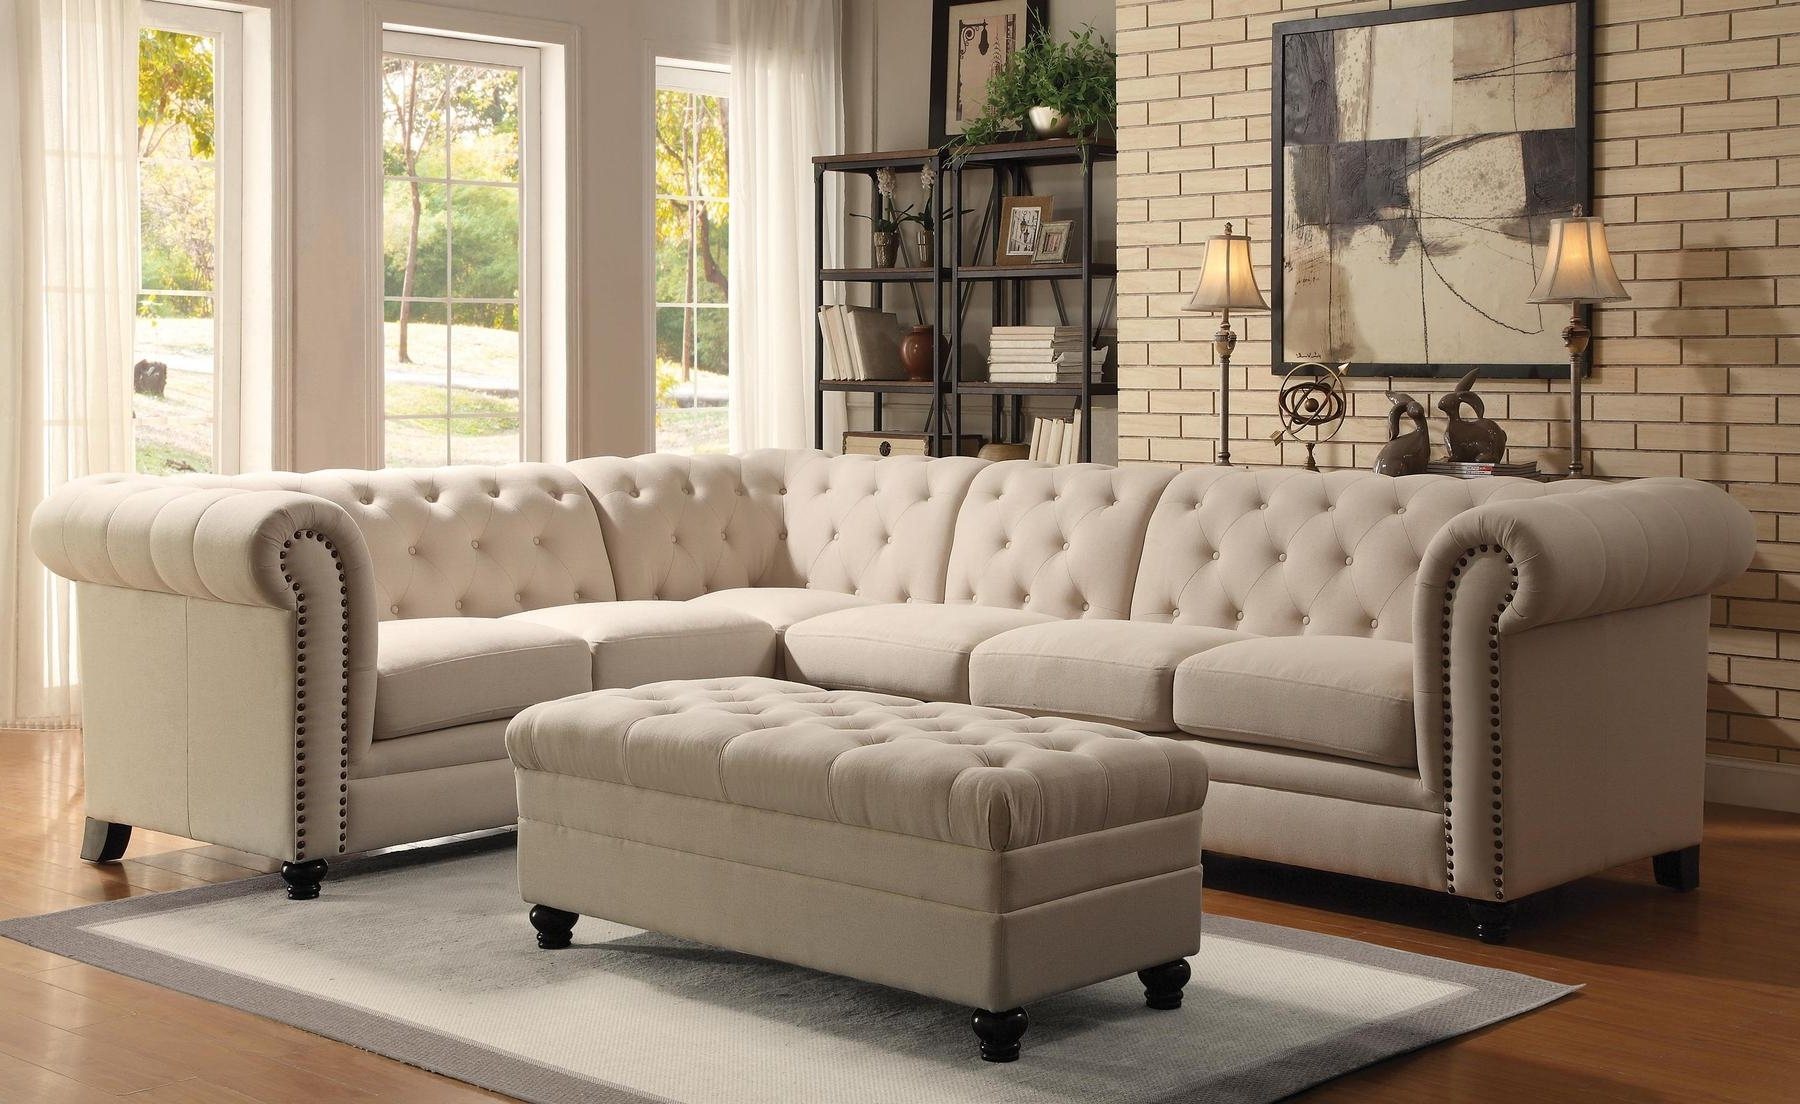 Roy Oatmeal Sectional Sofa 500222 Coaster Furniture Sectional With Regard To Most Up To Date Quality Sectional Sofas (View 13 of 15)